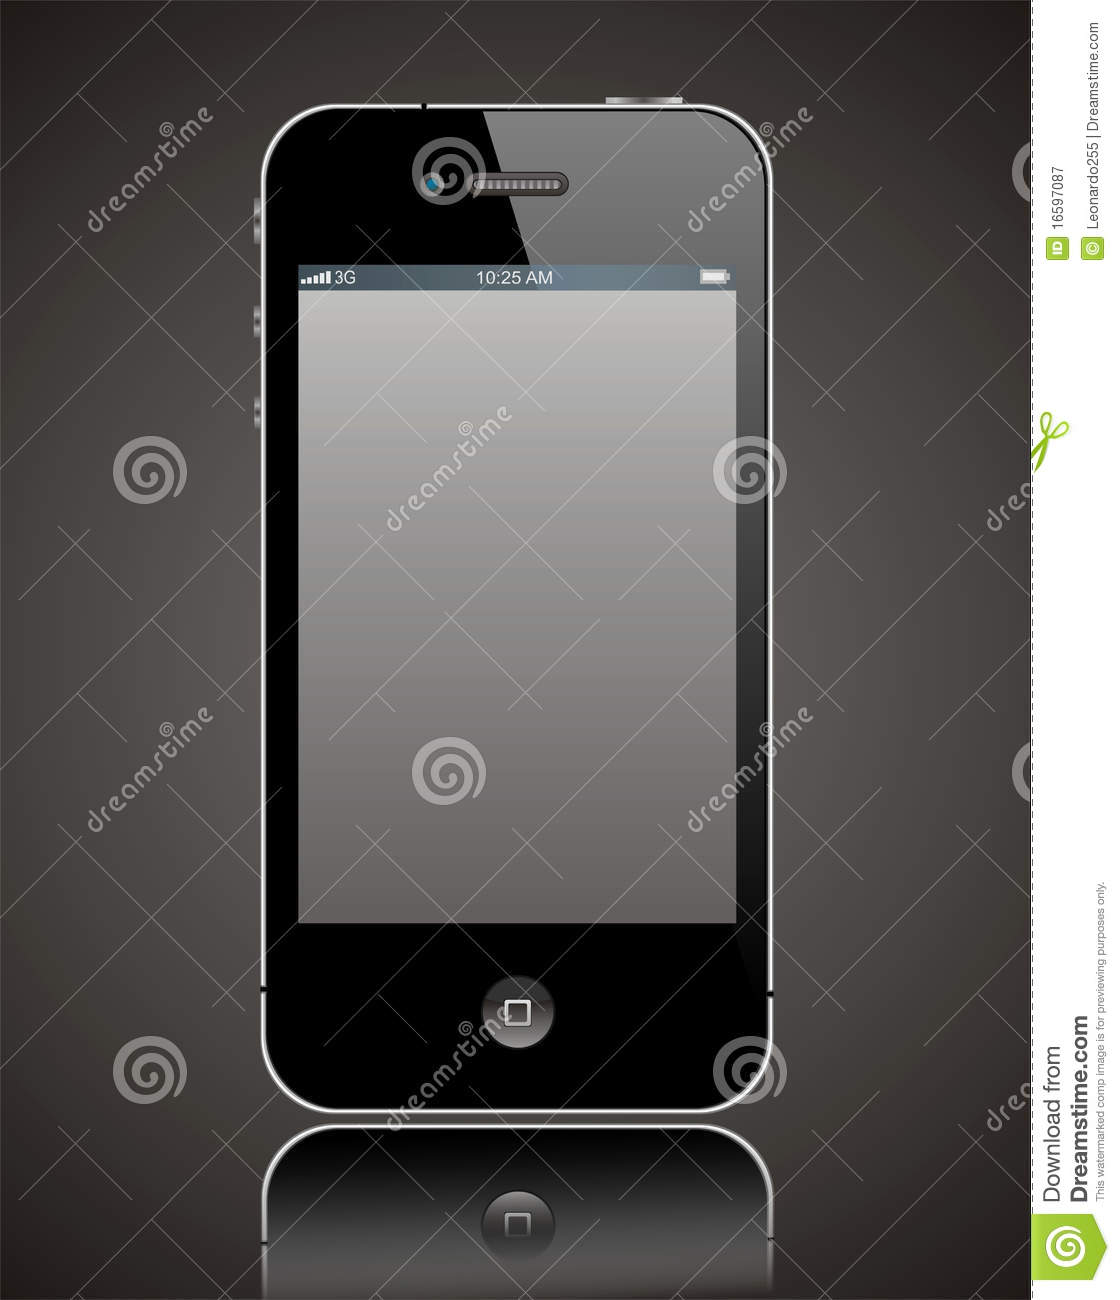 IPhone 4 van de appel